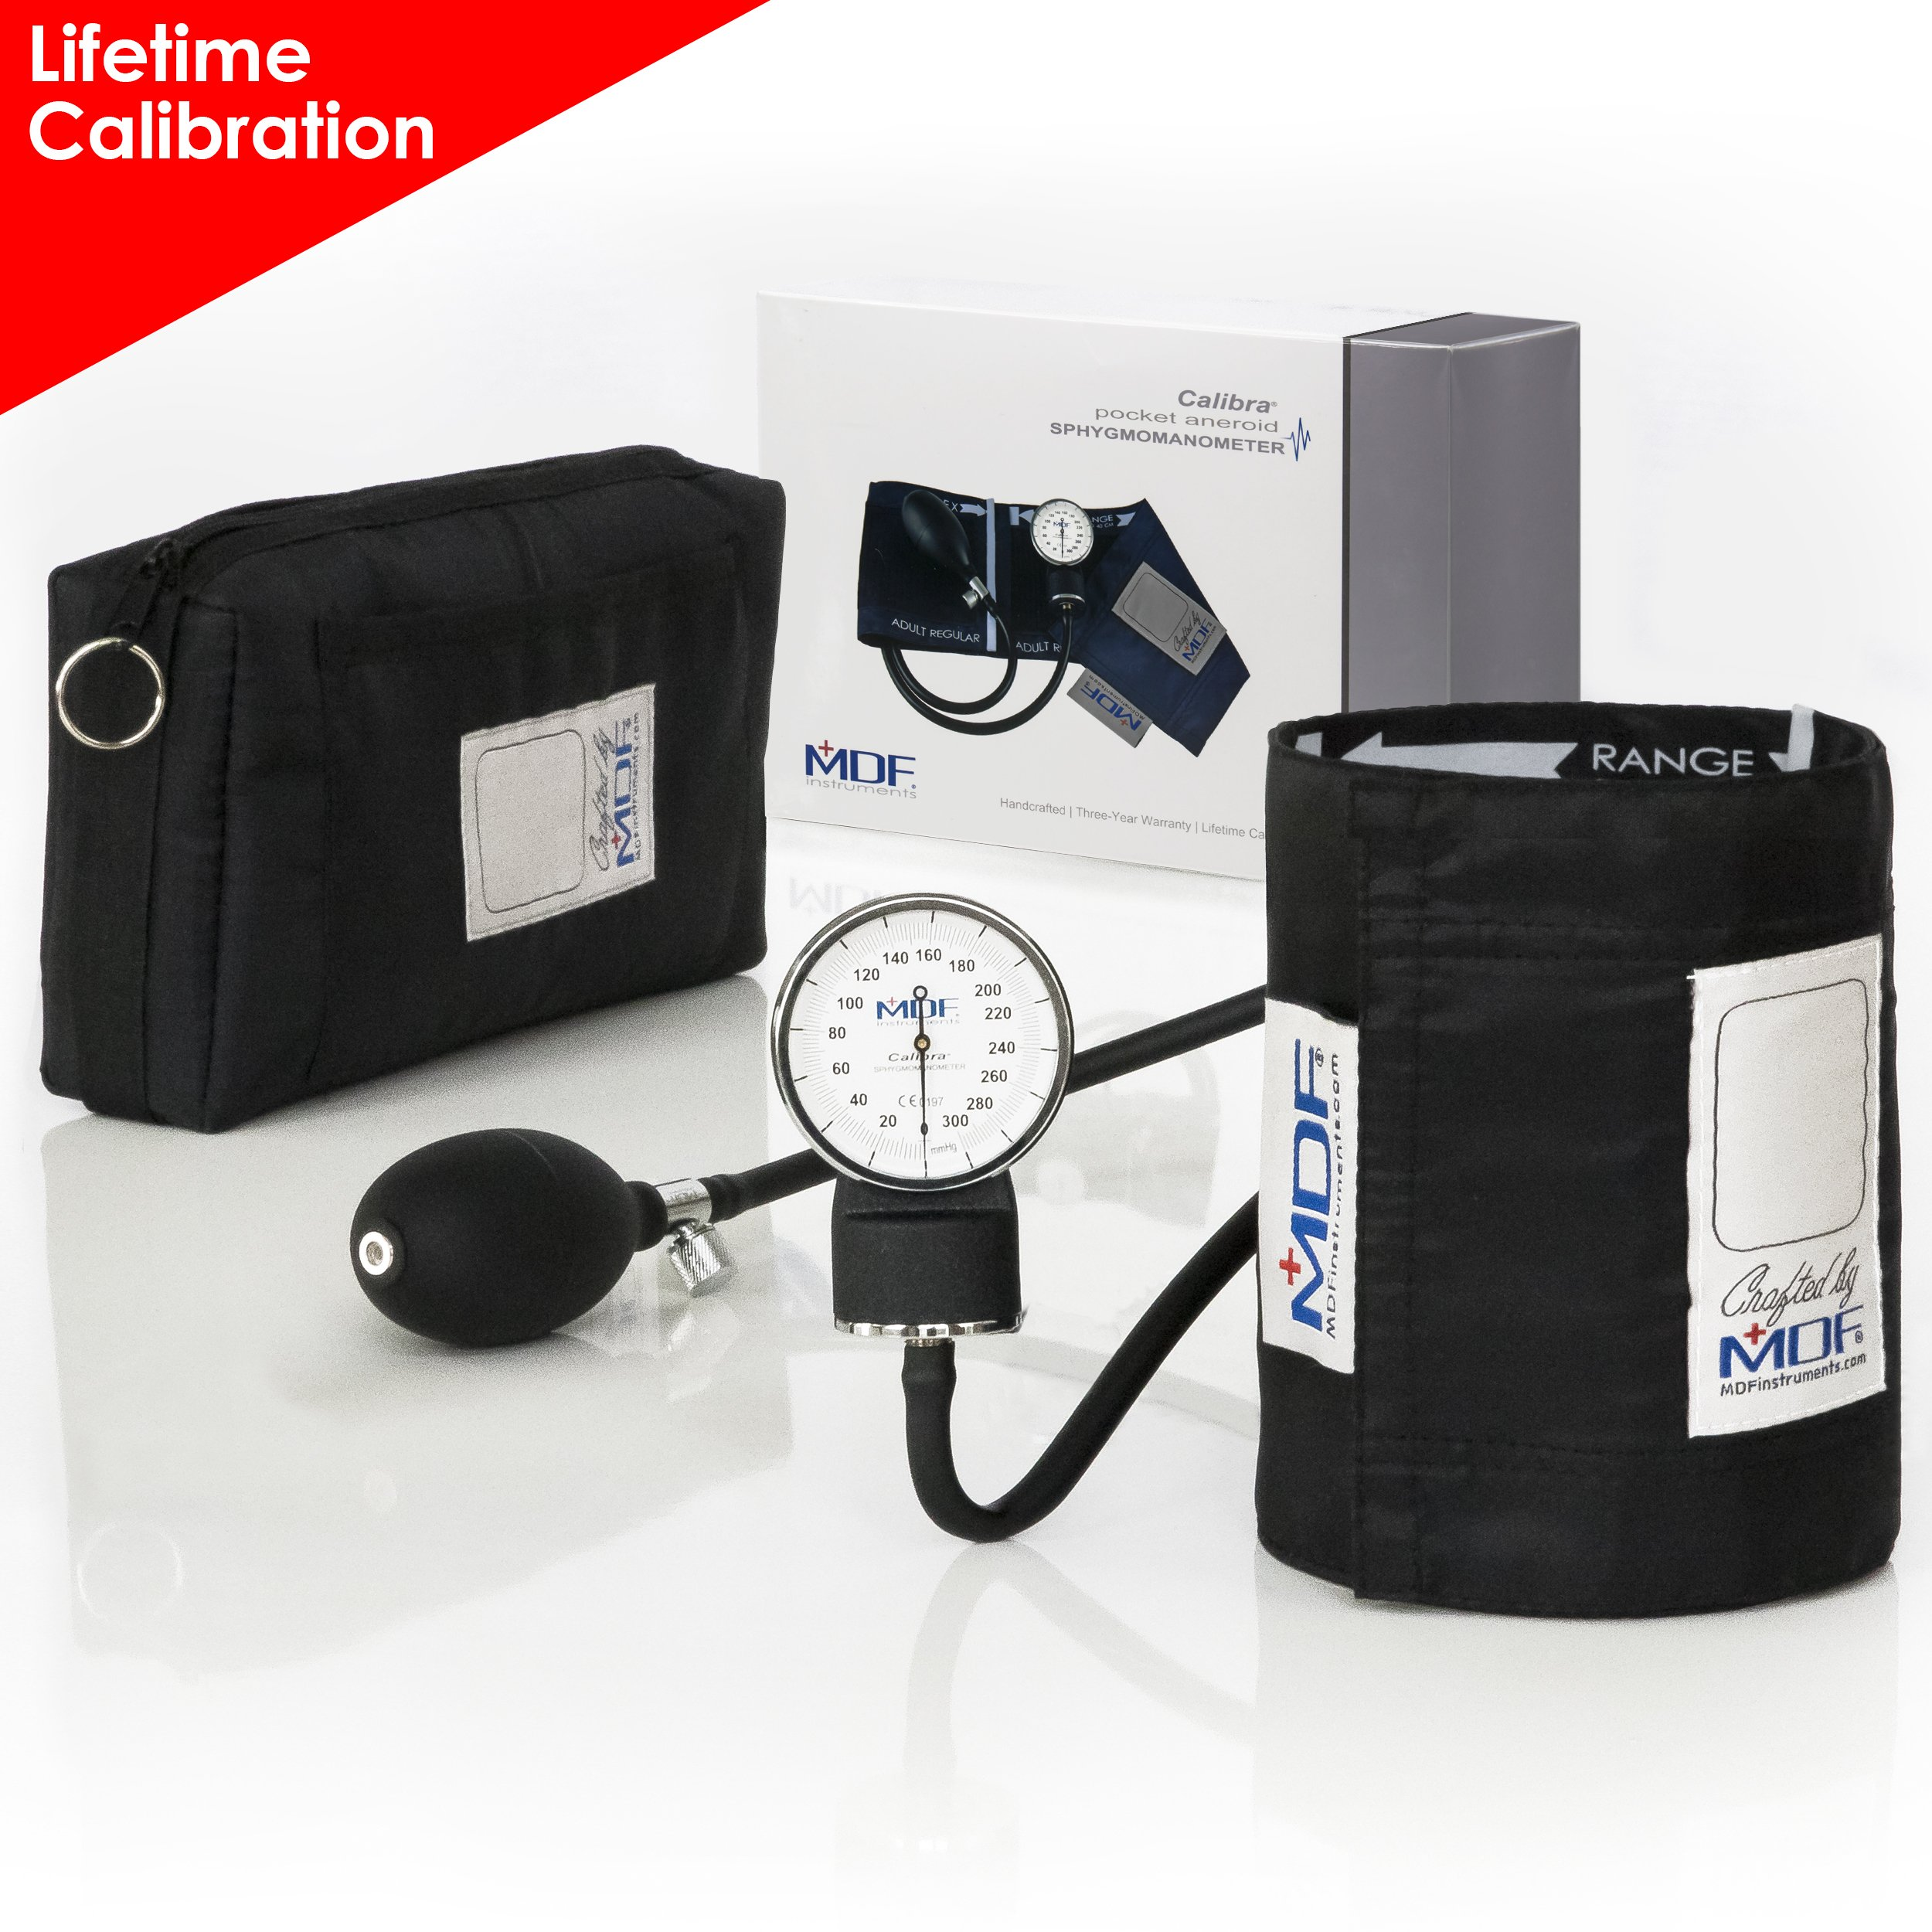 MDF® Calibra Aneroid Premium Professional Sphygmomanometer - Blood Pressure Monitor with Adult Blood Pressure Cuff & Carrying Case - Black - Full Lifetime Calibration & 3-Year Warranty (MDF808M-11)